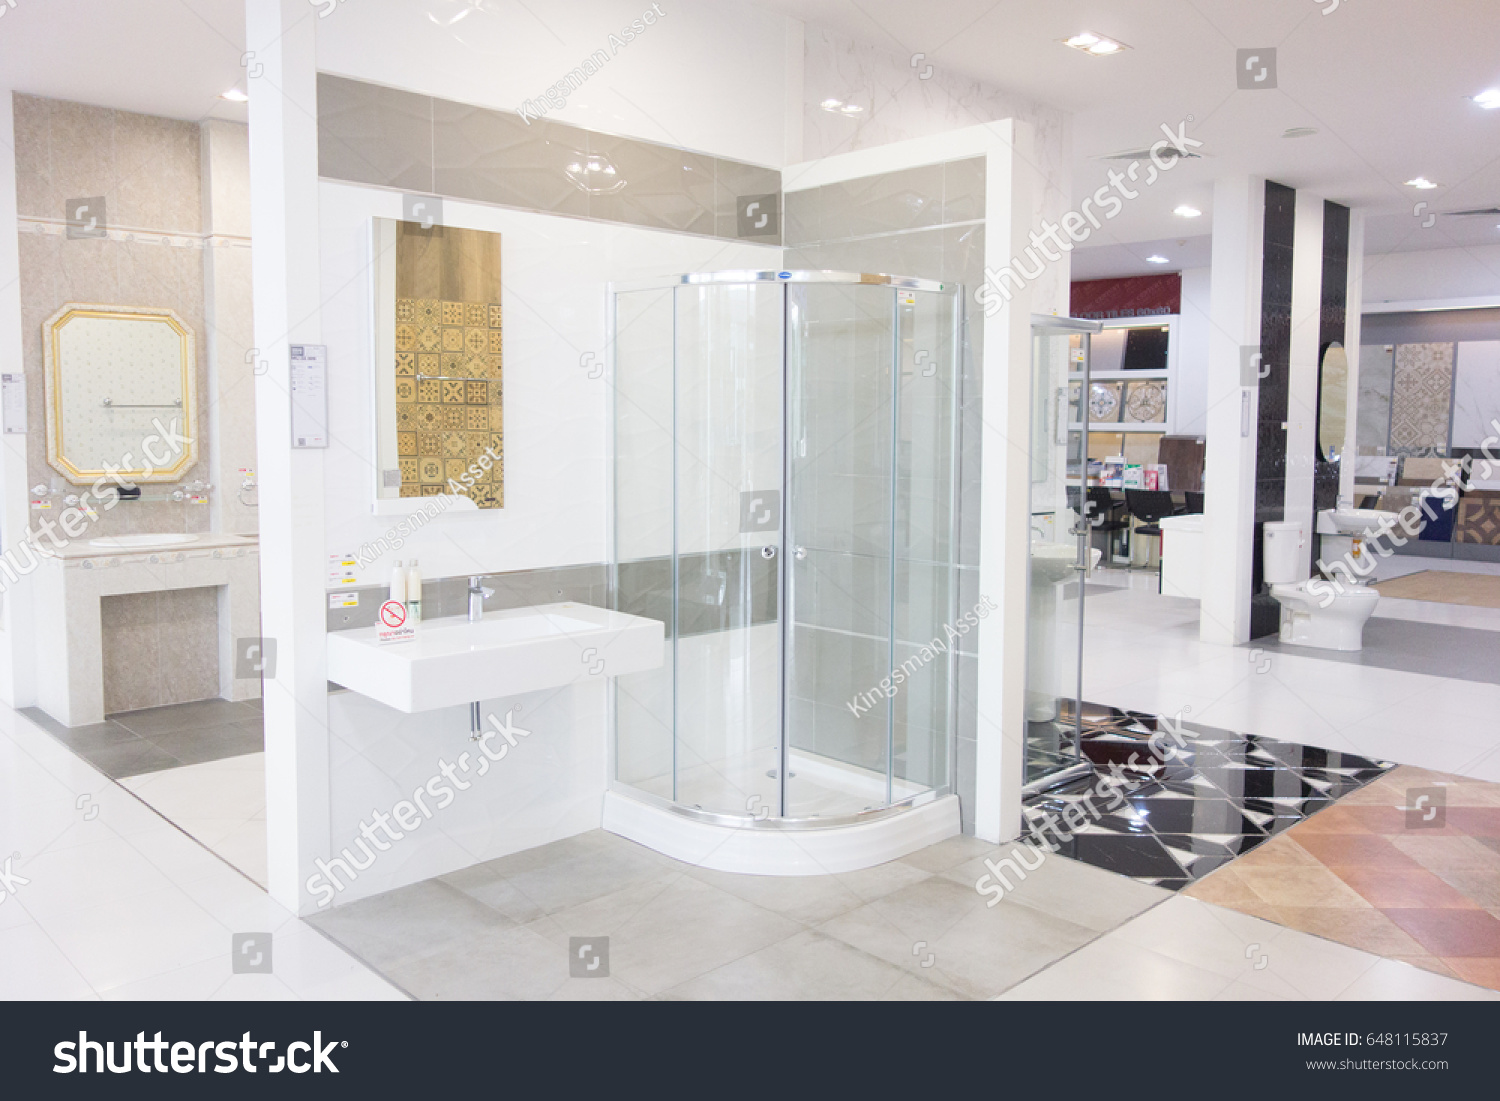 Thailand January 012007 Interior Showroom Bathroom Stock Photo ...